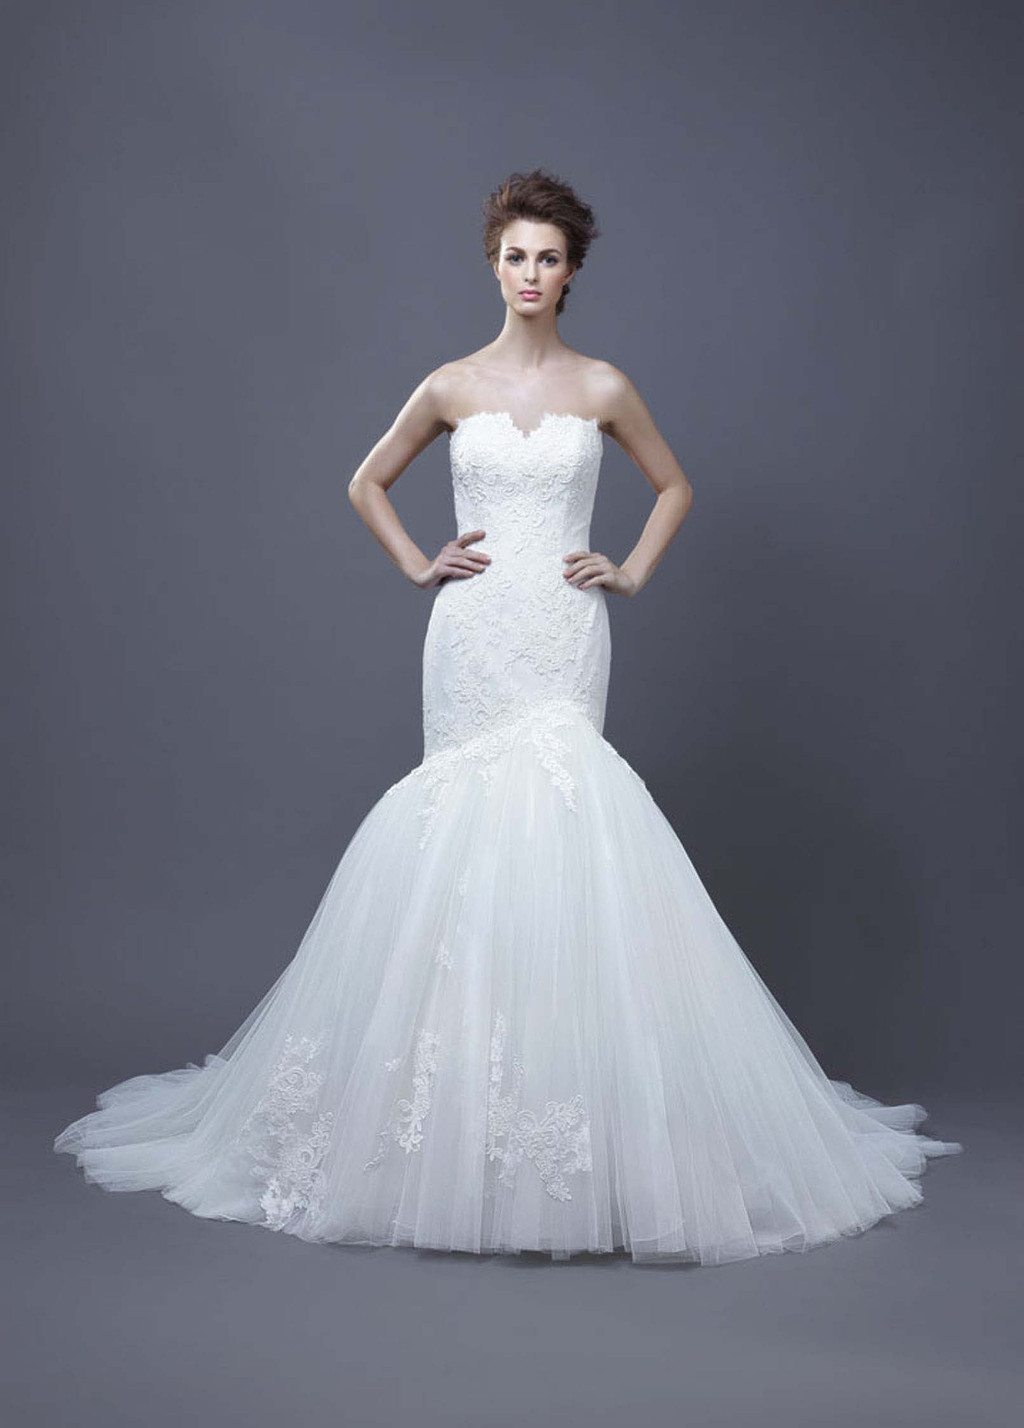 2013 Wedding Dress by Enzoani Bridal Heather